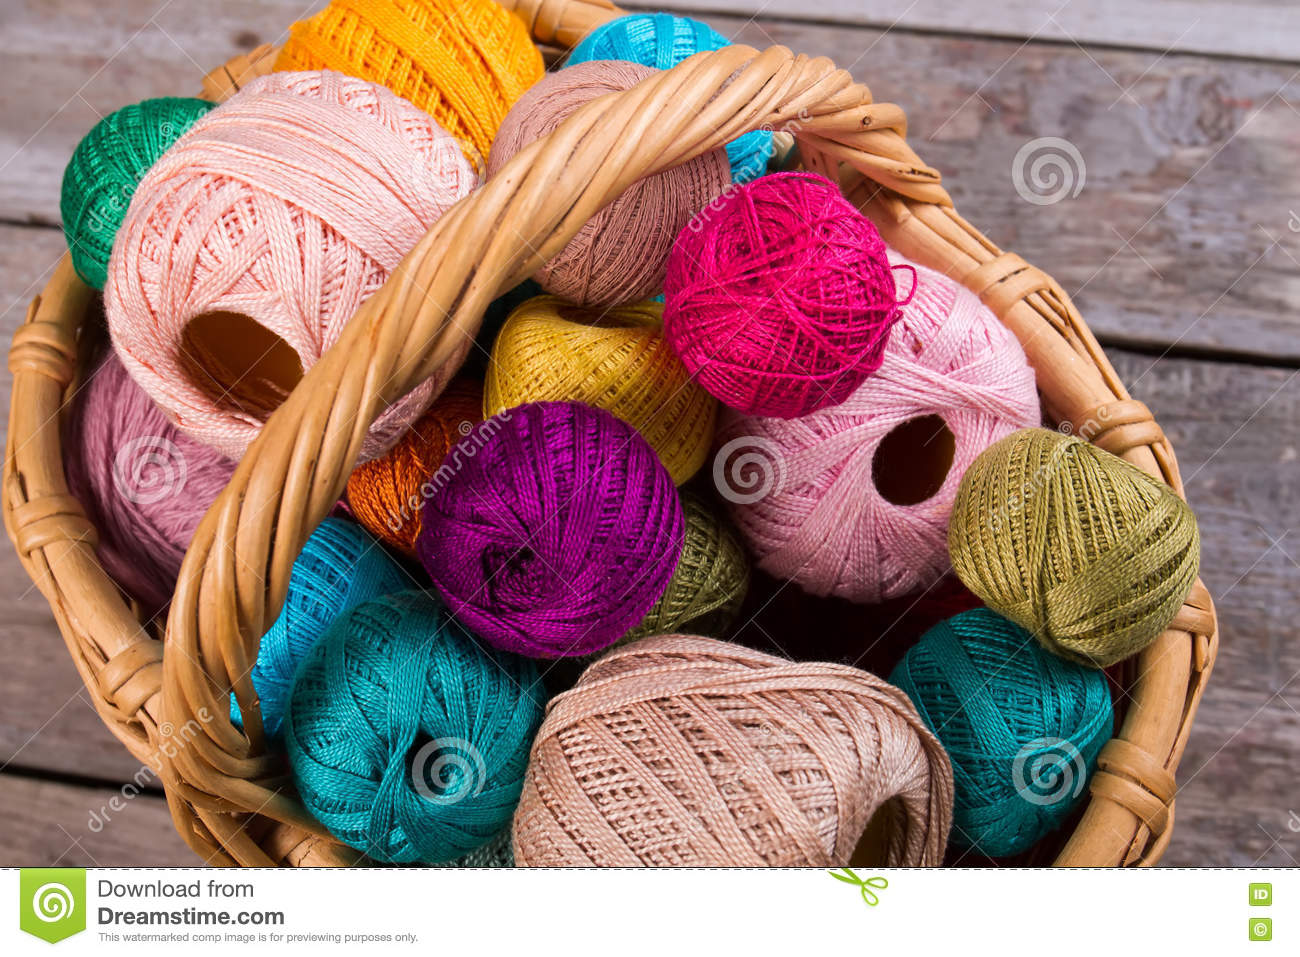 Many multi-colored threads for embroidery and yarn.